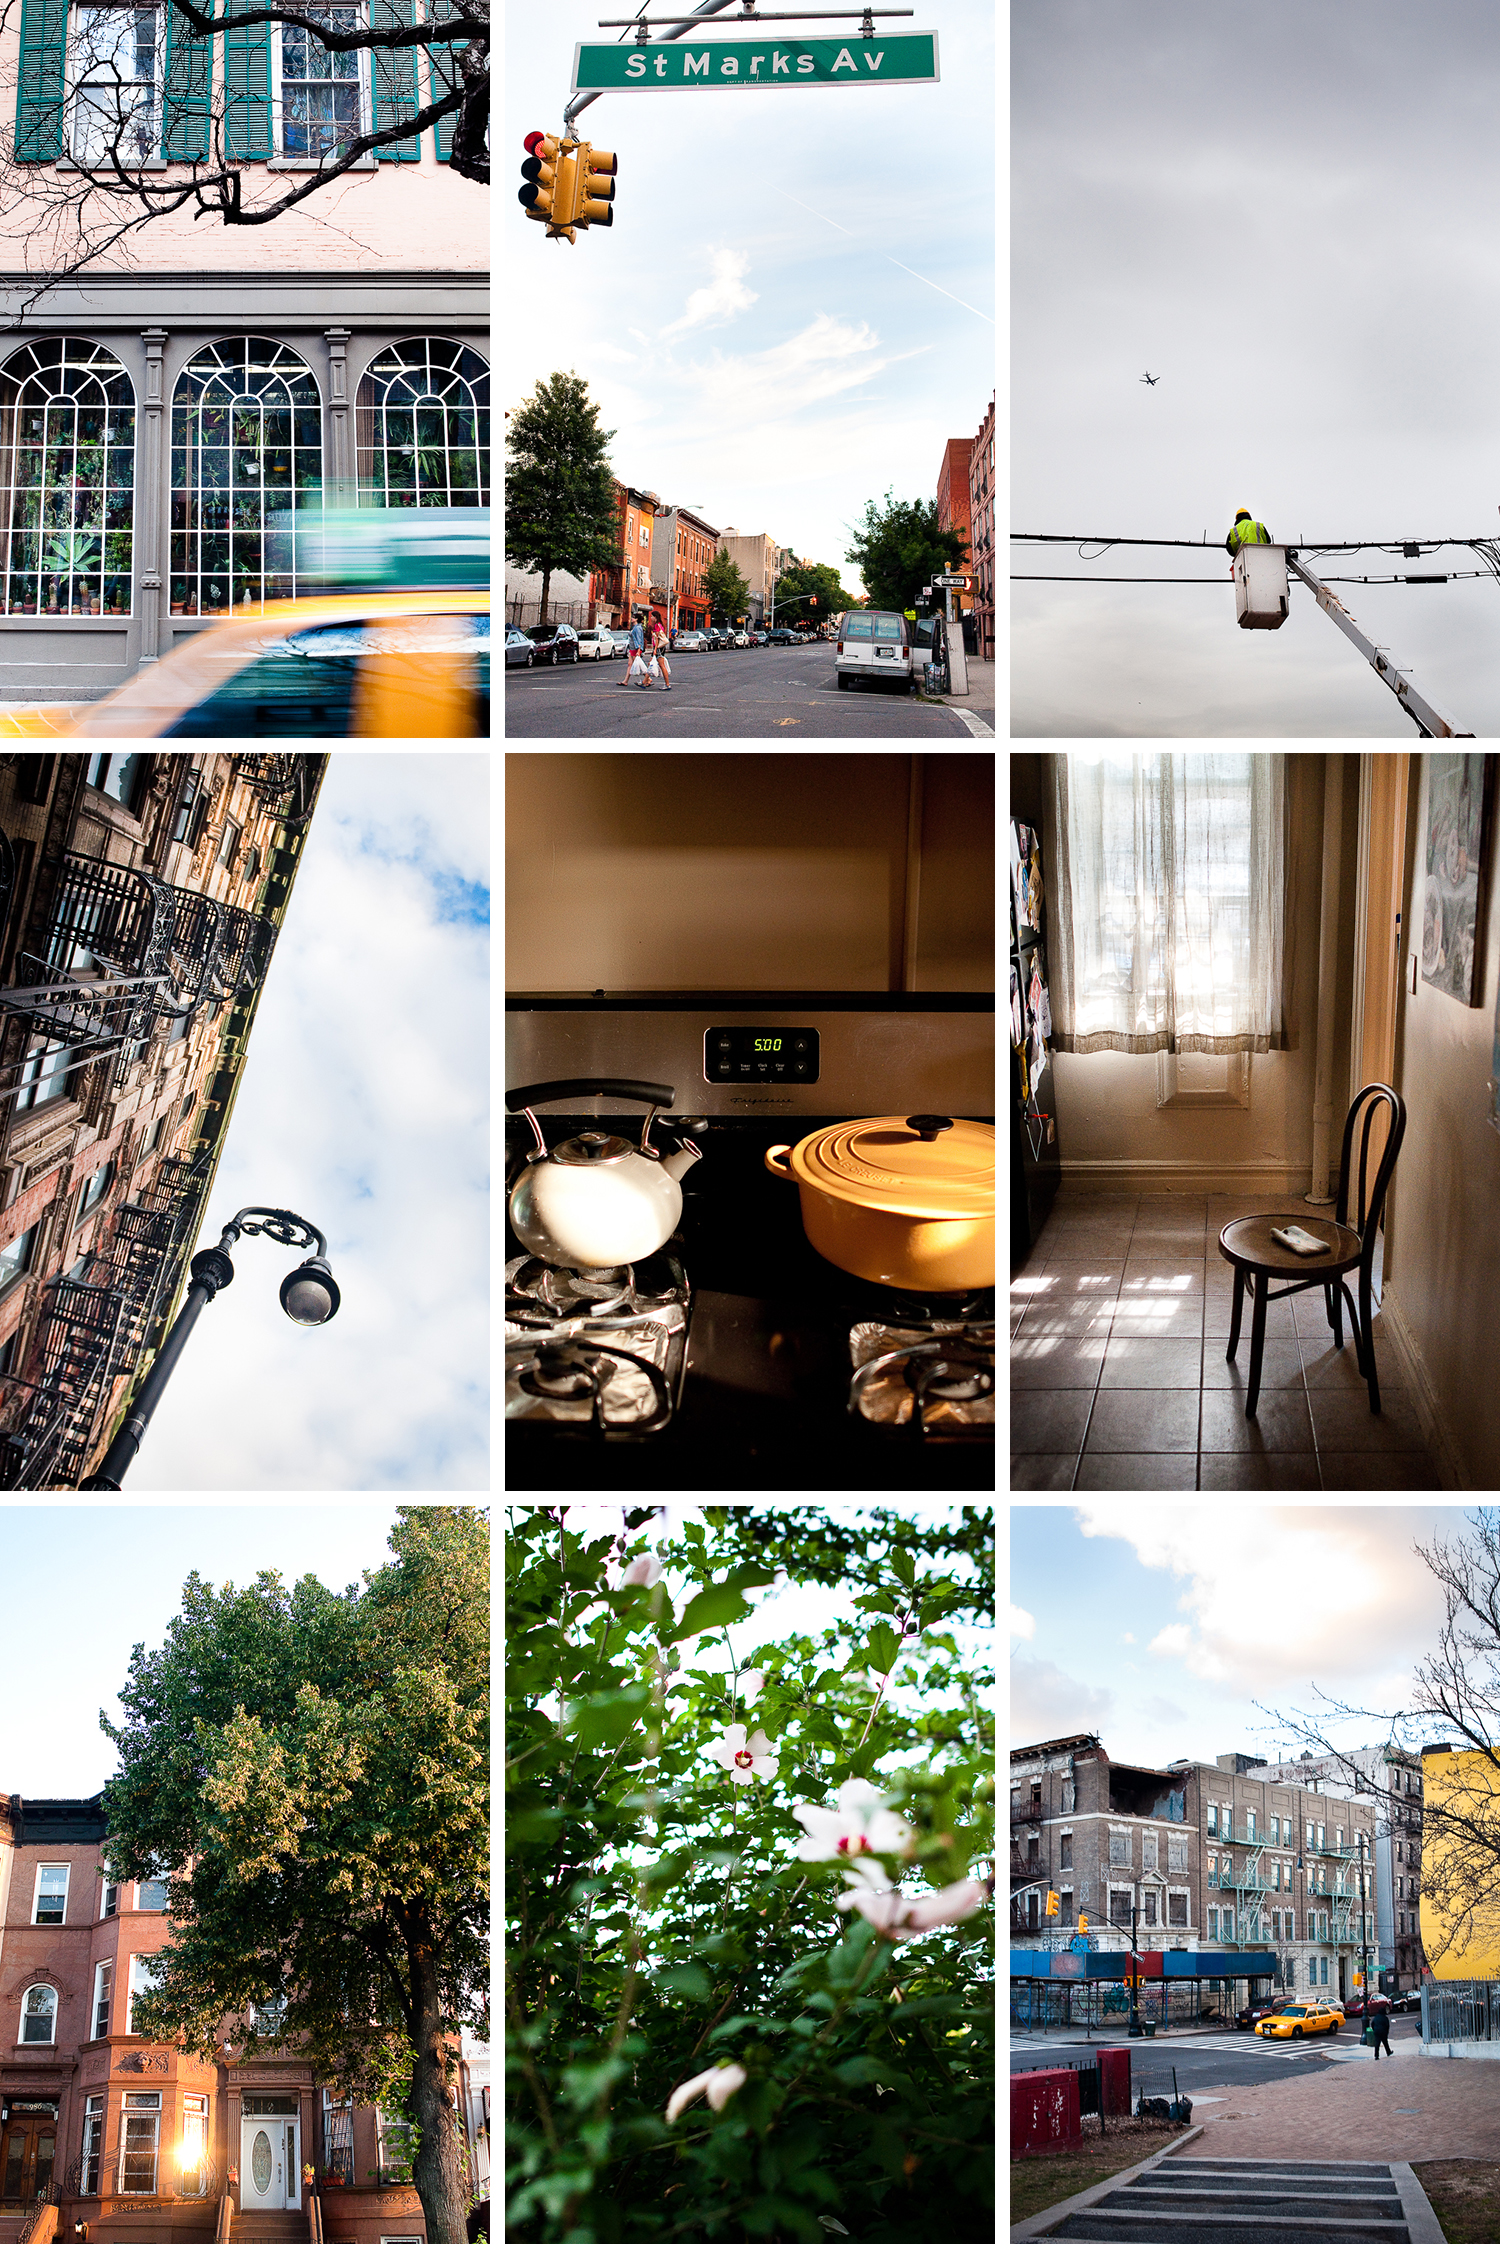 """""""Daily Life, New York"""" -  (Row 1)  SoHo Window and Taxi  , SoHo, New York;  St. Mark's and Bedford,  Crown Heights, Brooklyn; At Work , Crown Heights, Brooklyn; (Row 2) Chinatown Lightpole , Chinatown, New York; Oven ,Crown Heights, Brooklyn; The Chair in the Kitchen ,Crown Heights, Brooklyn; (Row 3) Sunset on Park Place, Crown Heights, Brooklyn; Hibiscus, Crown Heights, Brooklyn; Up Brooklyn Ave., Crown Heights, Brooklyn"""